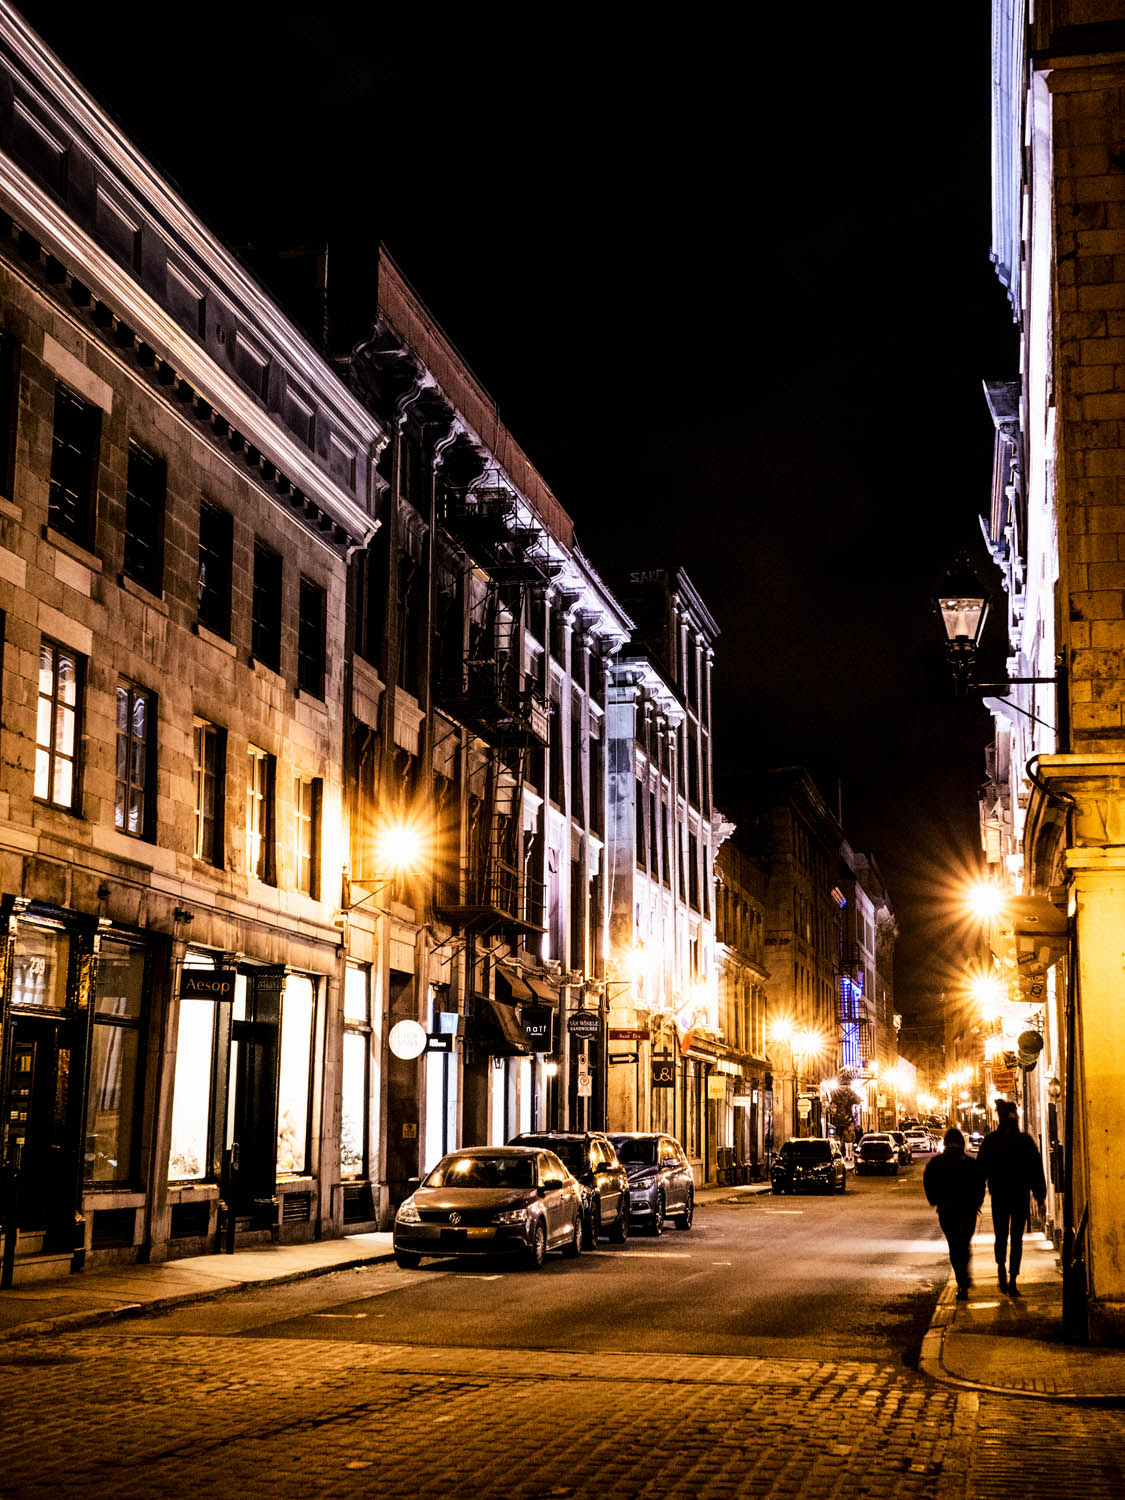 Image: Old Montreal. Photo by Mark C. Hughes ©